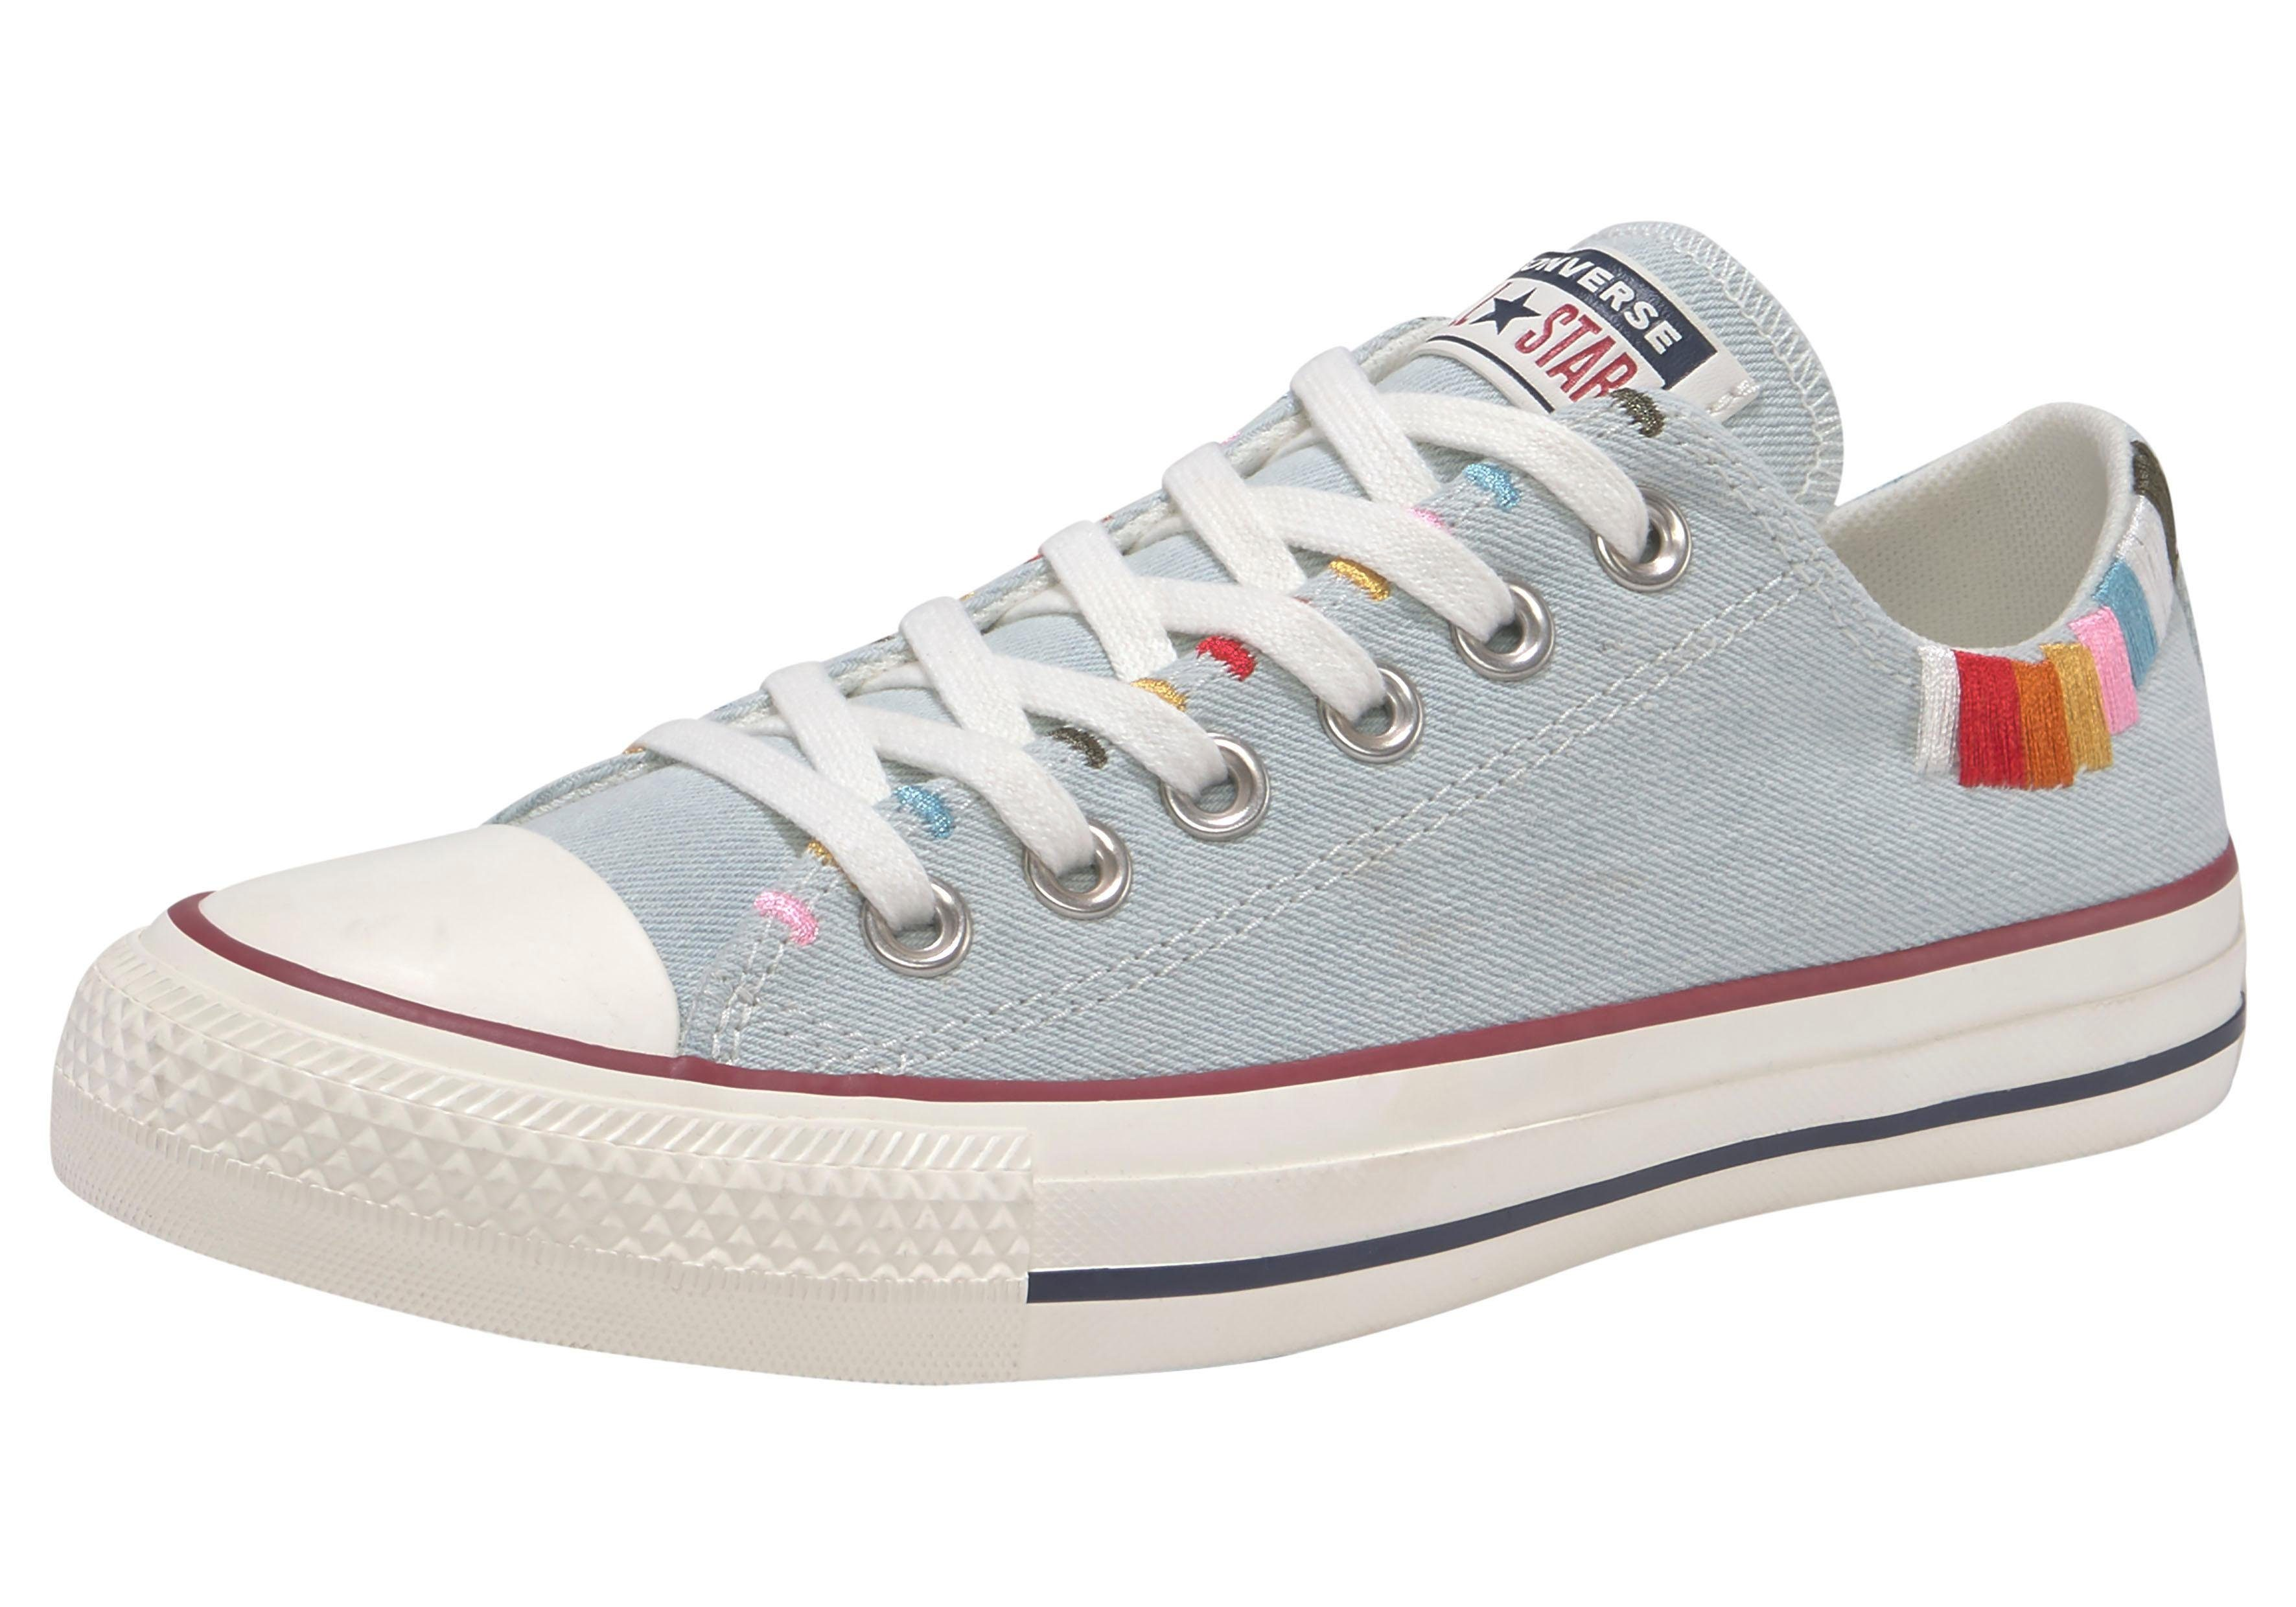 Converse »Chuck Taylor All Star Ox Festival« Sneaker online kaufen | OTTO